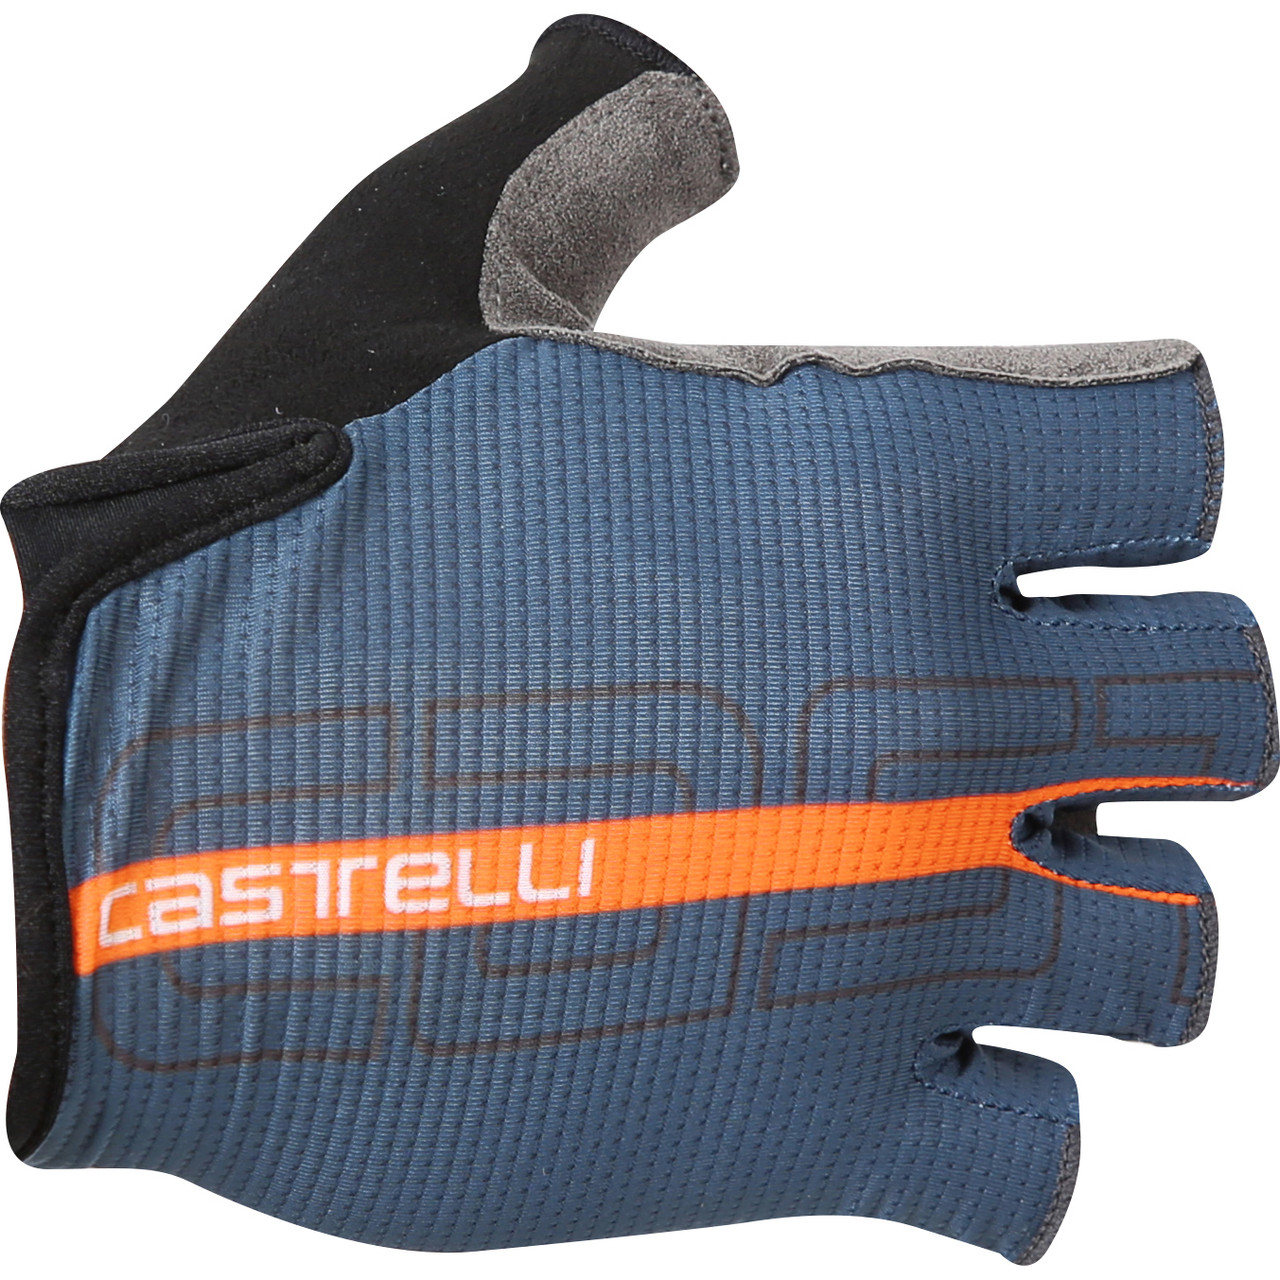 Castelli Scalda Pro Bike Gloves 2020